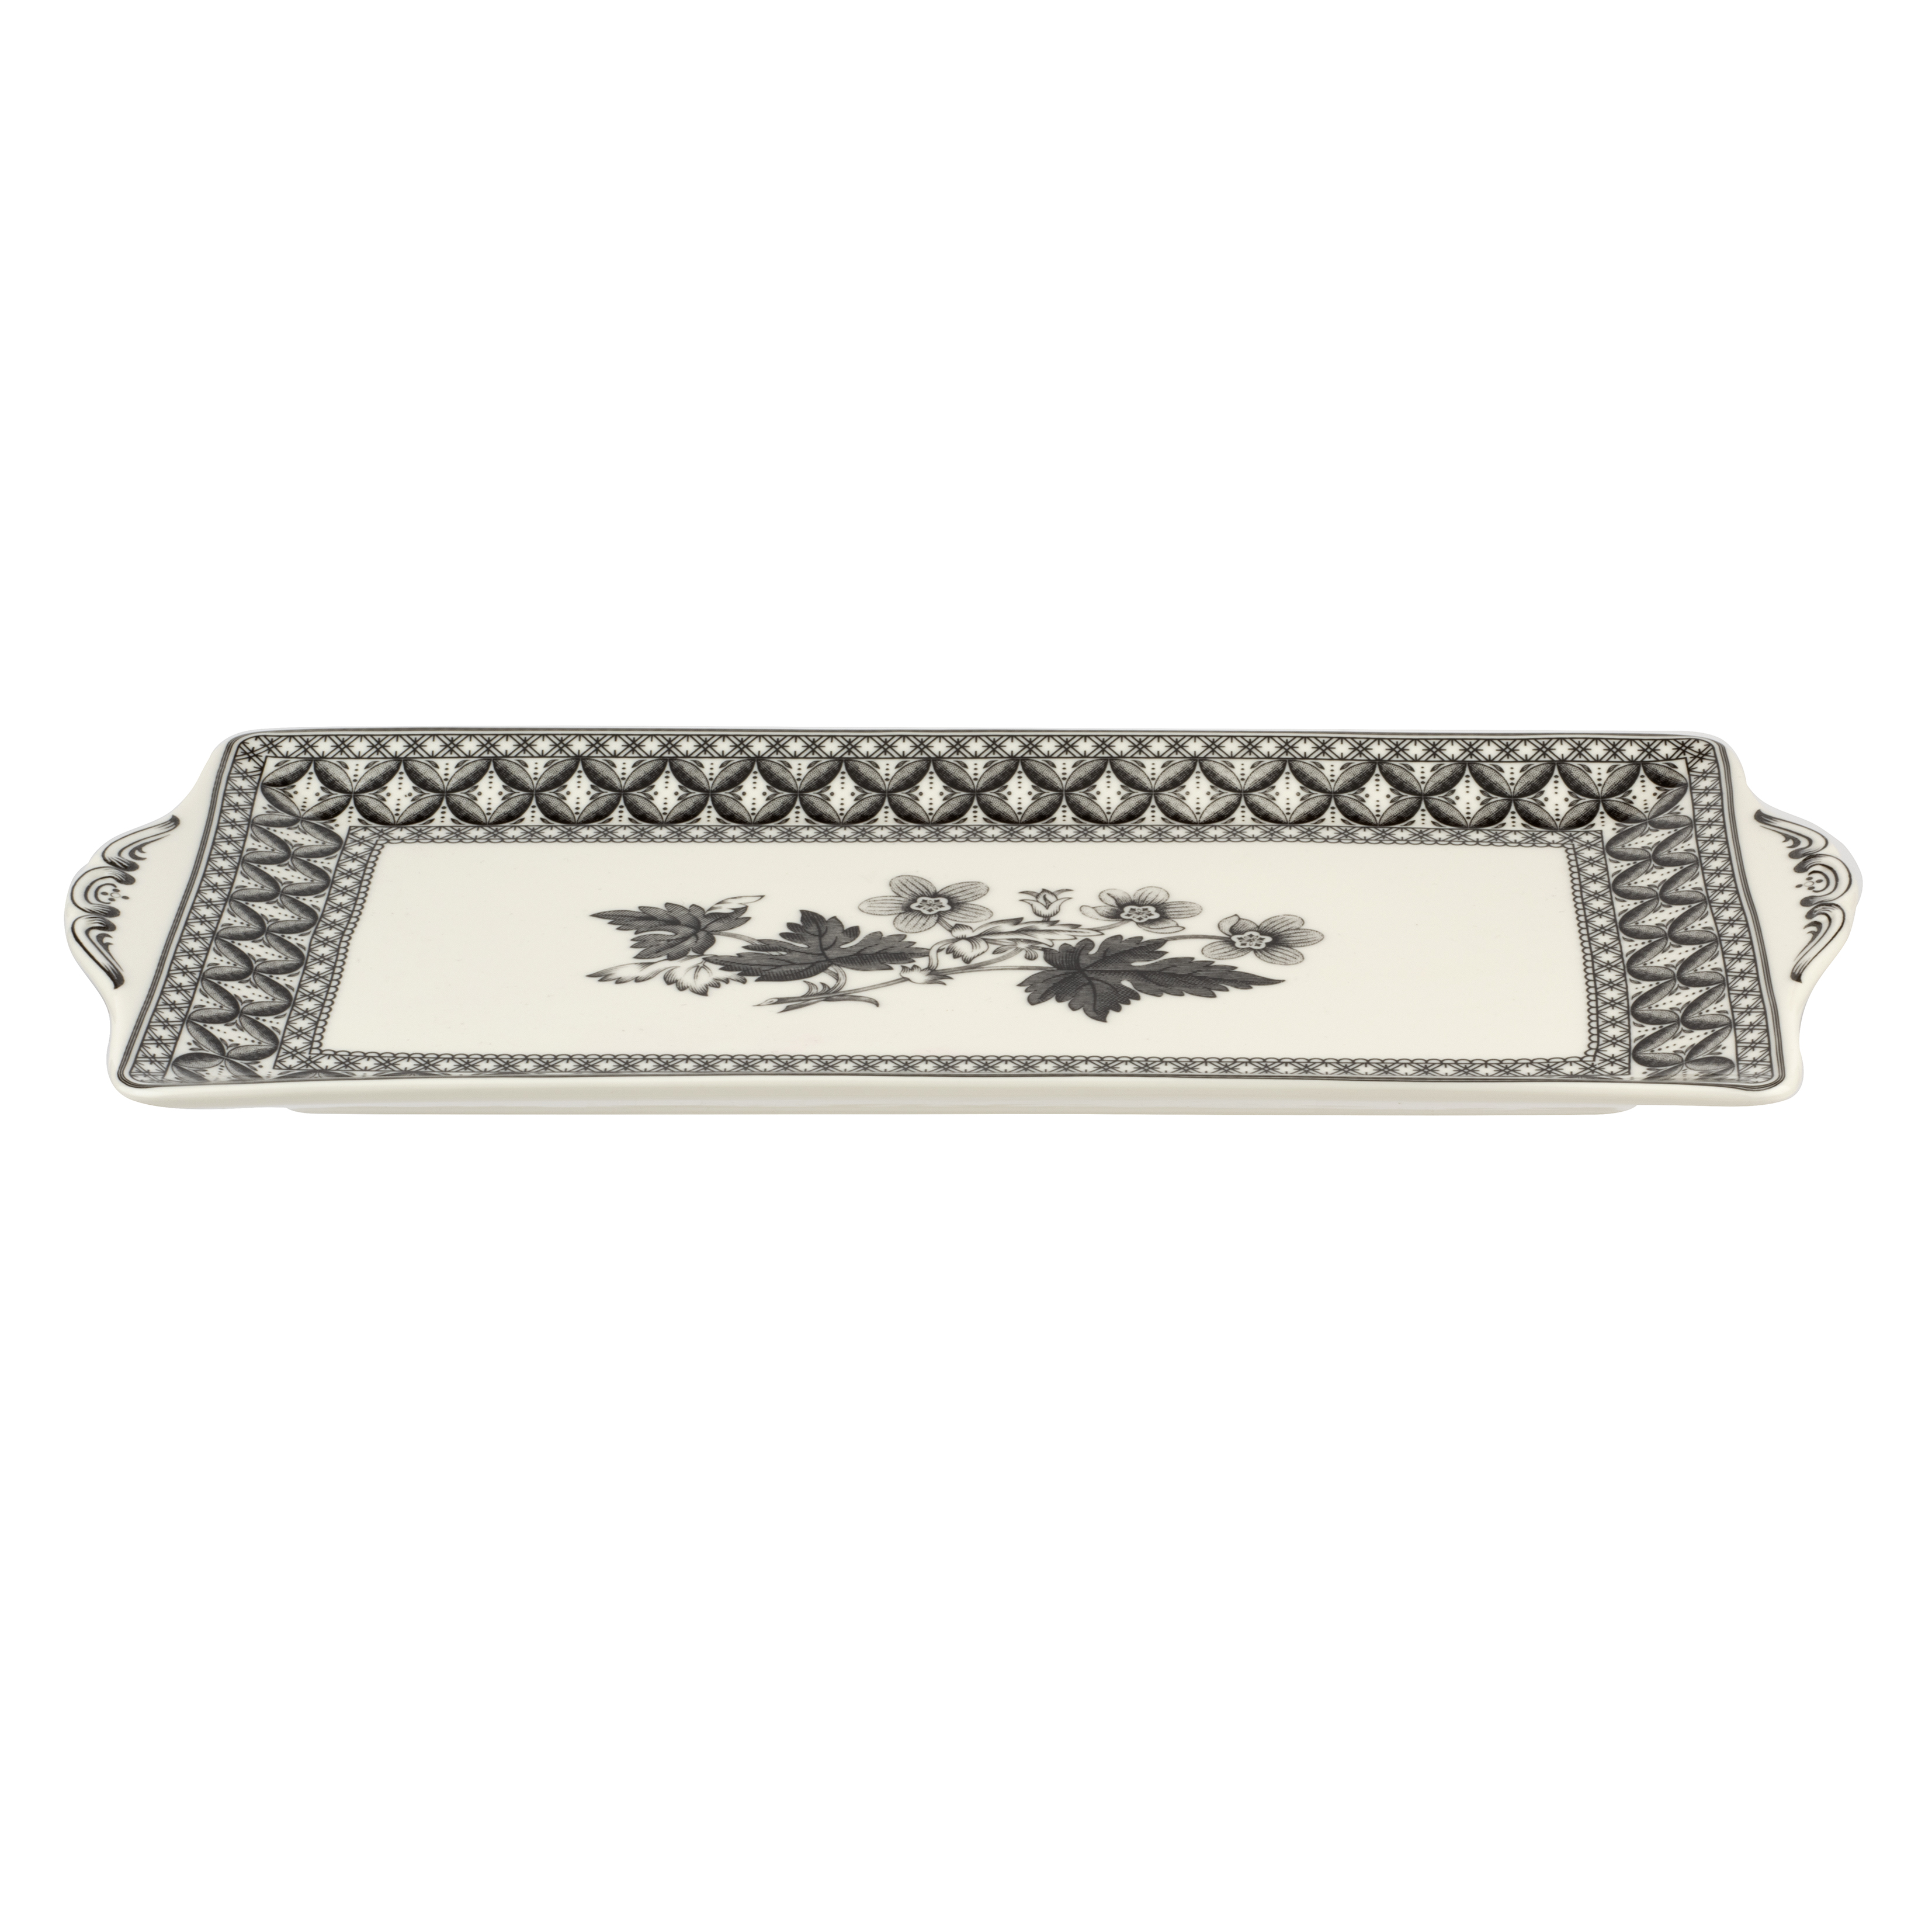 Spode Heritage 12 Inch Sandwich Tray (Geranium) image number 1